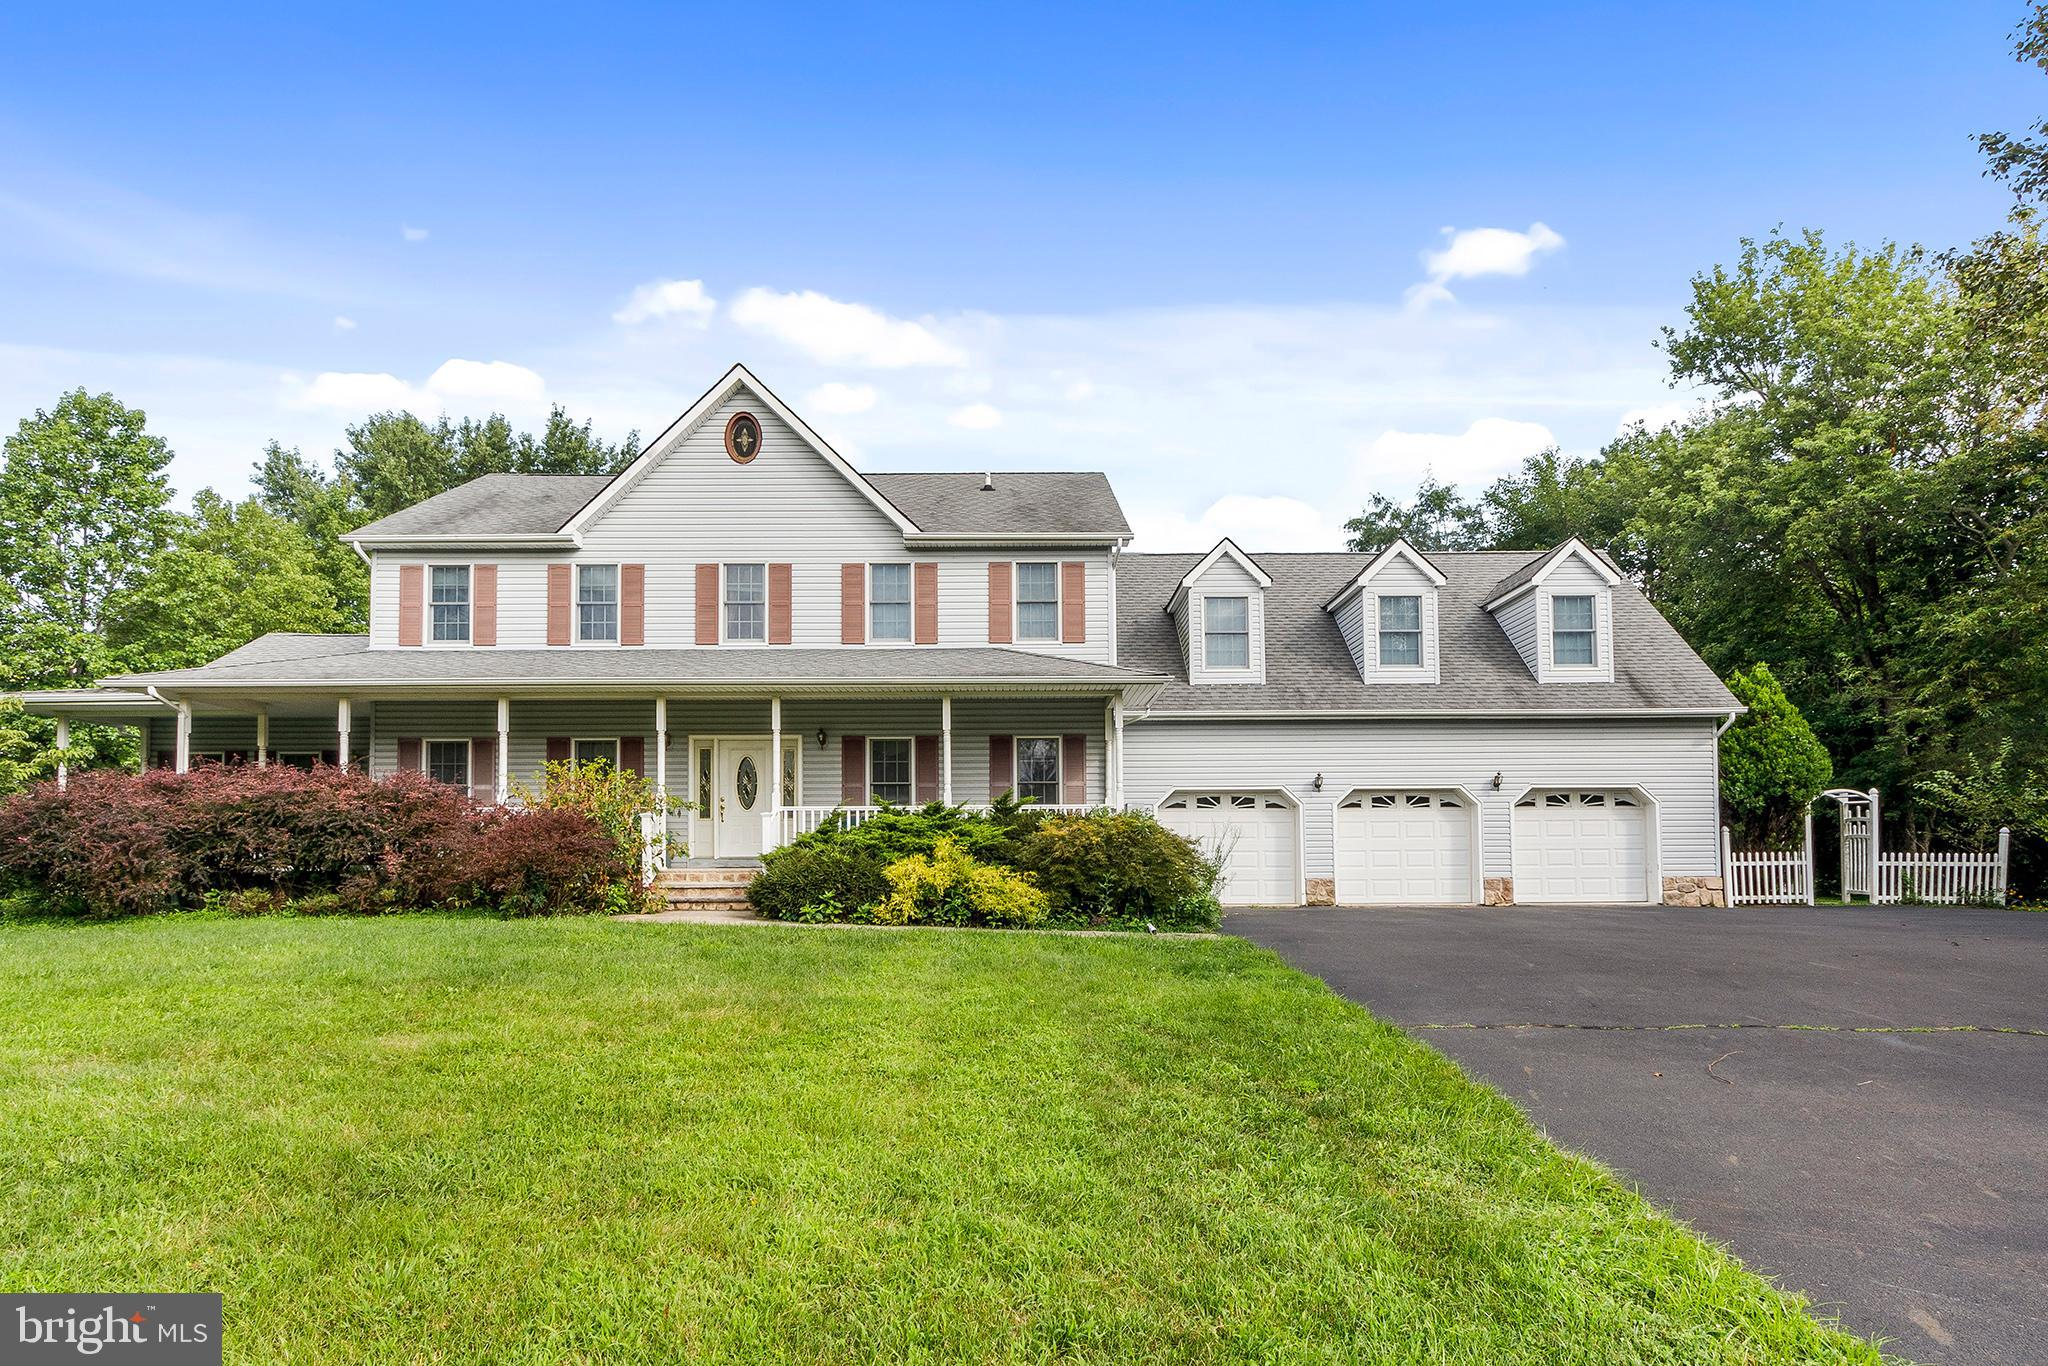 106 Denow Rd, Lawrence Township, NJ, 08648